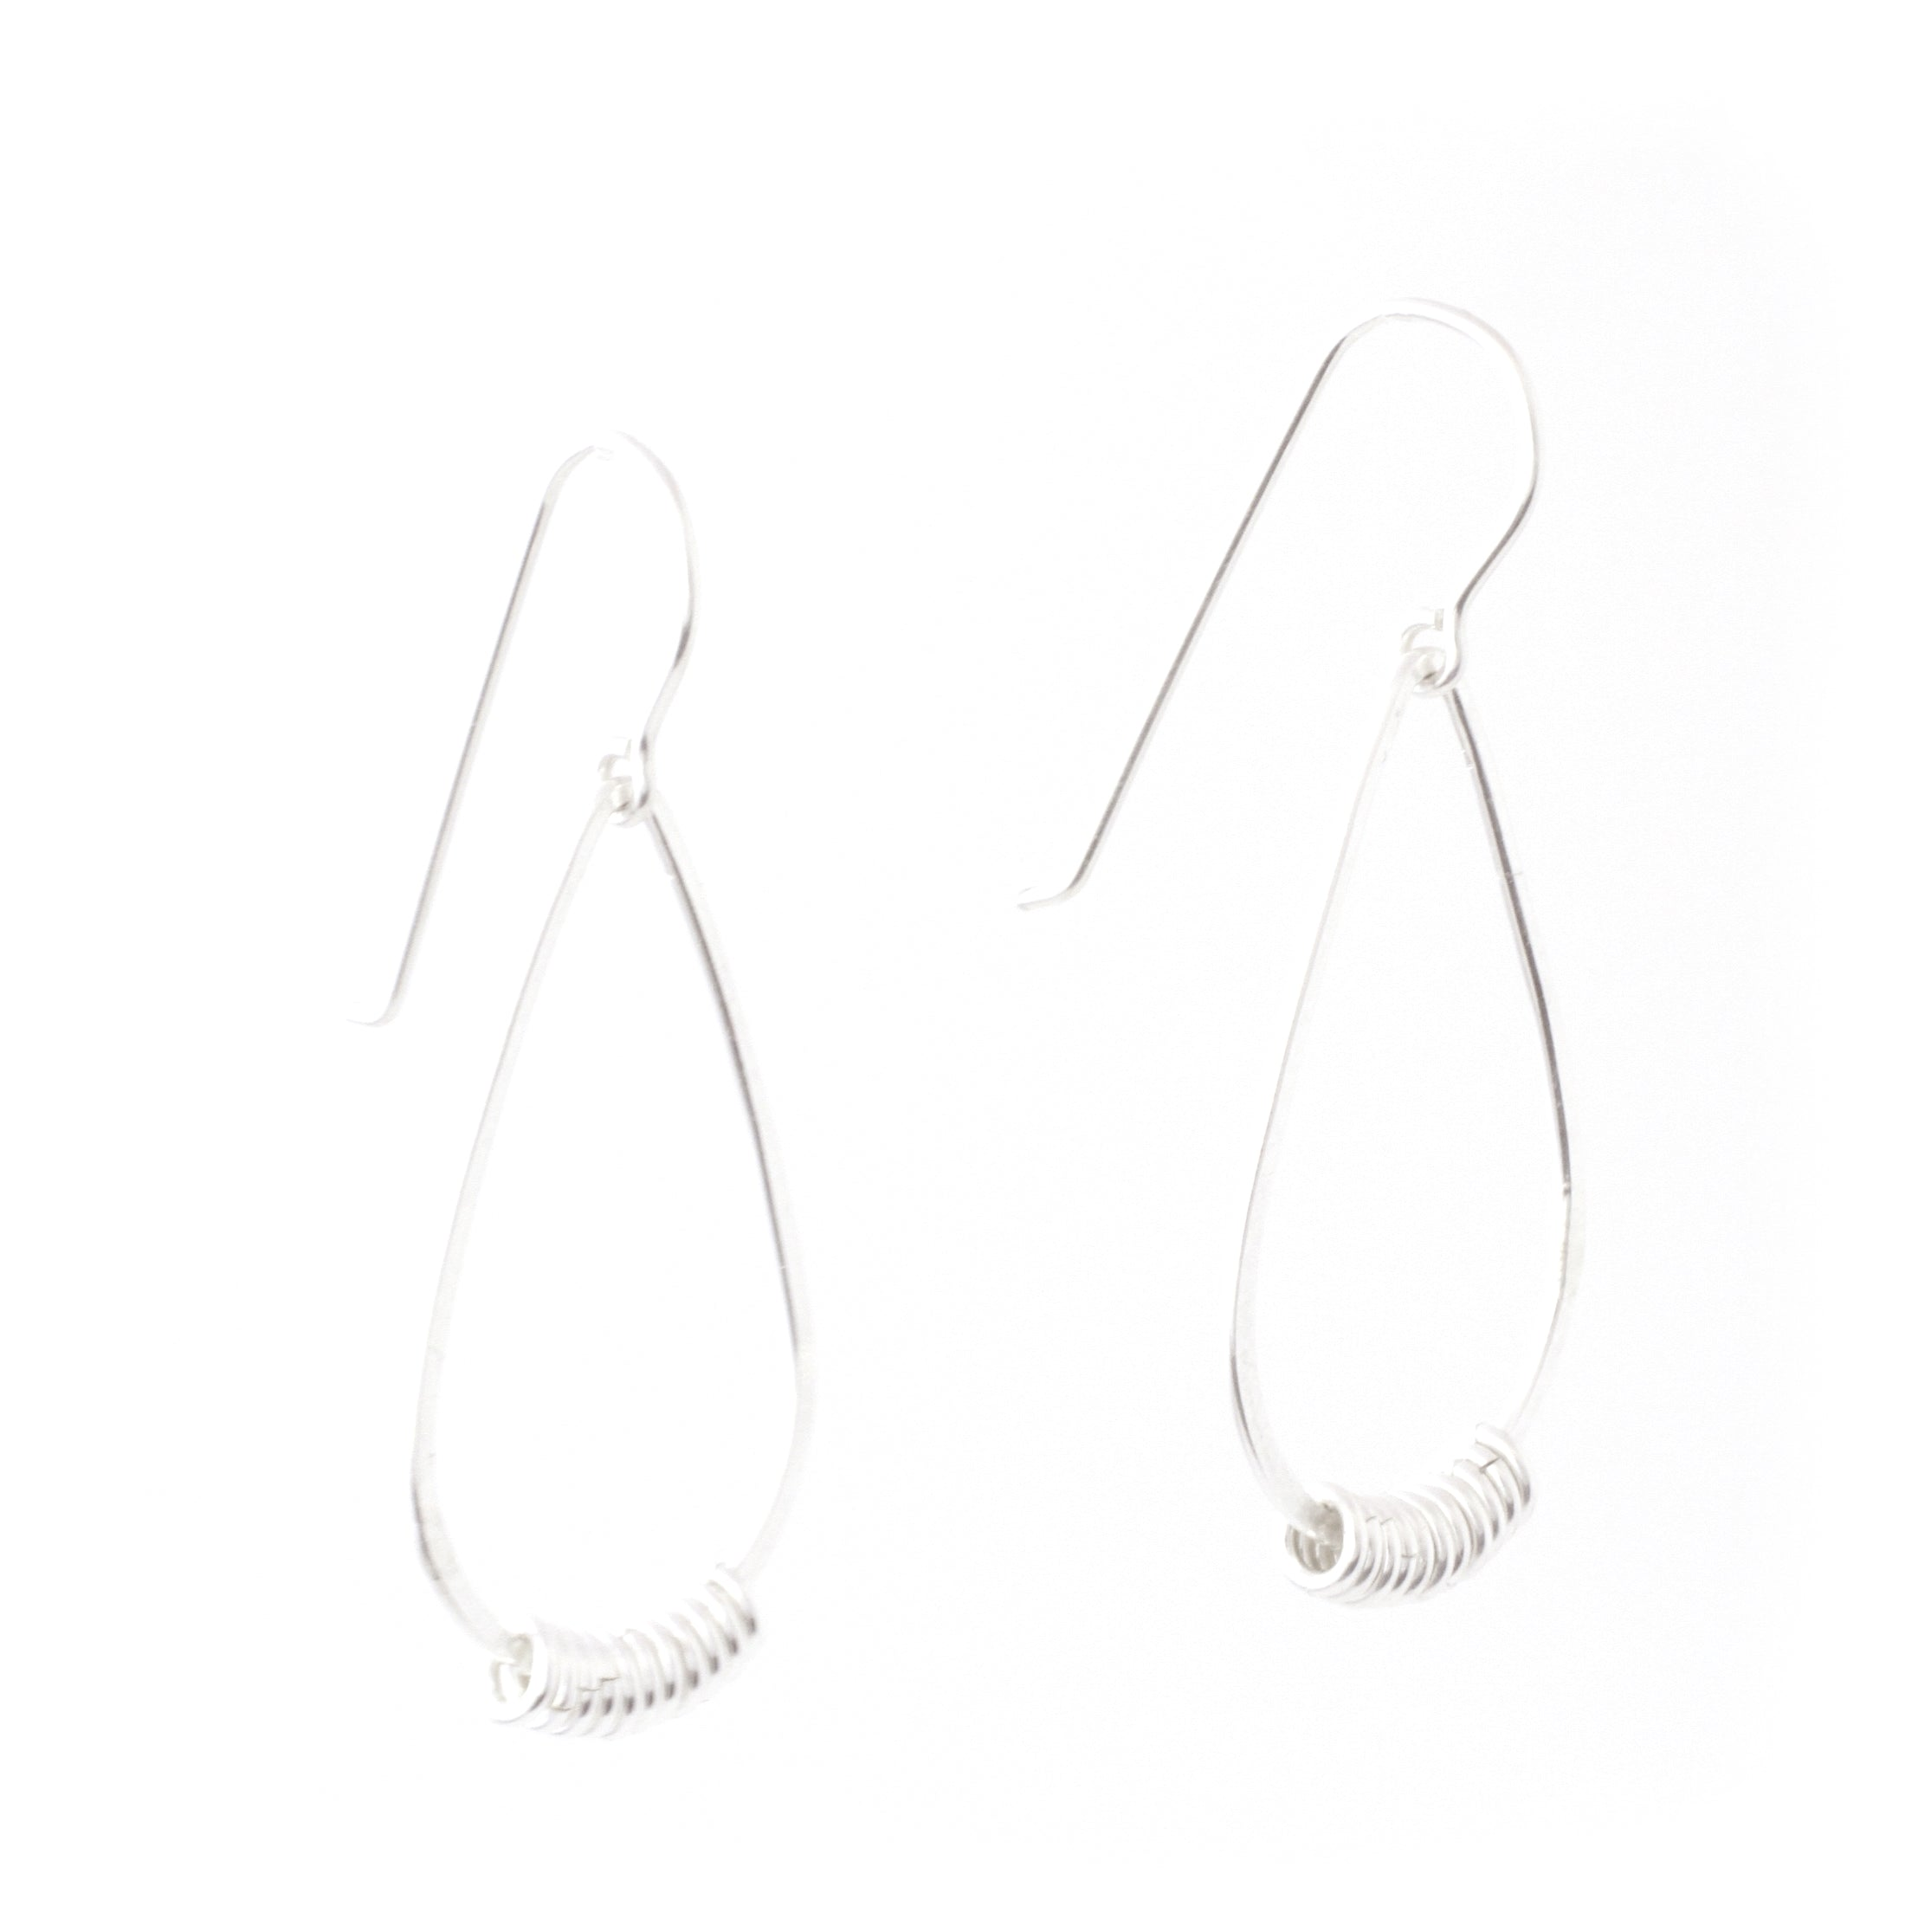 Suspended Earrings (Sterling Silver)